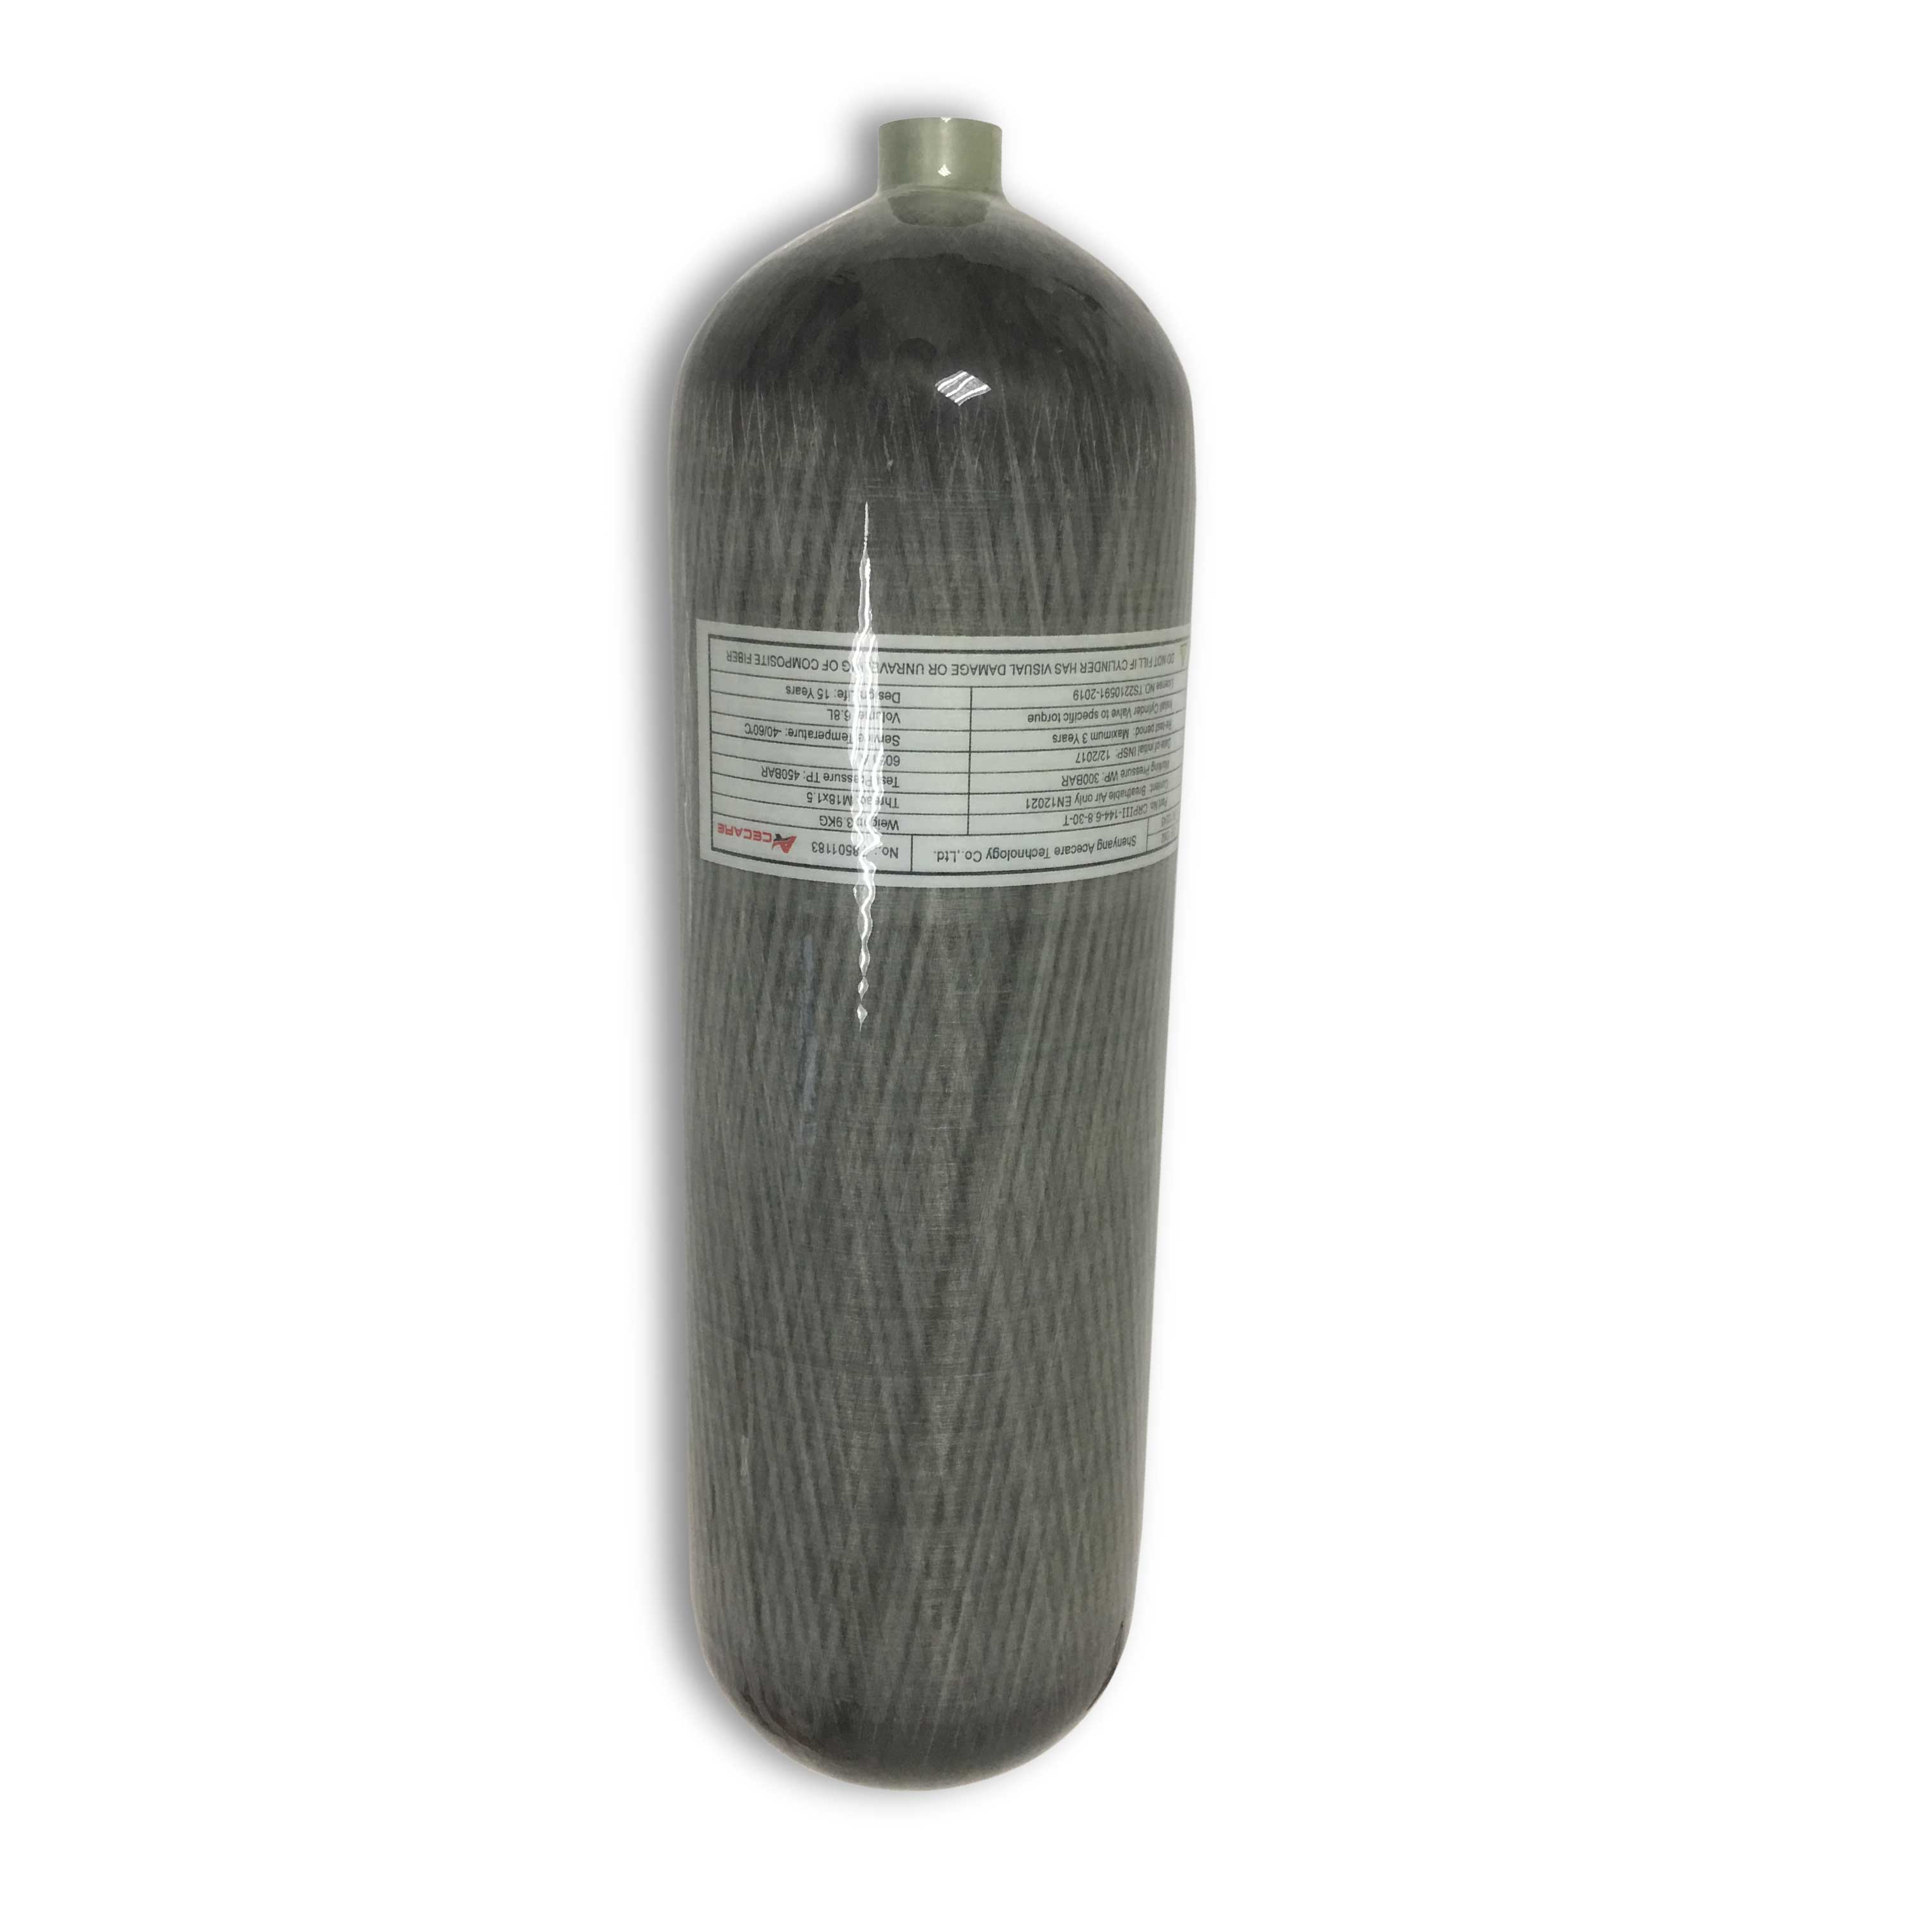 AC168 High Pressure Oxygen Tank/SCBA Diving Bottles/Paintball Tank/4500psi 300bar 6.8L Composite Carbon Fiber Cylinder Acecare